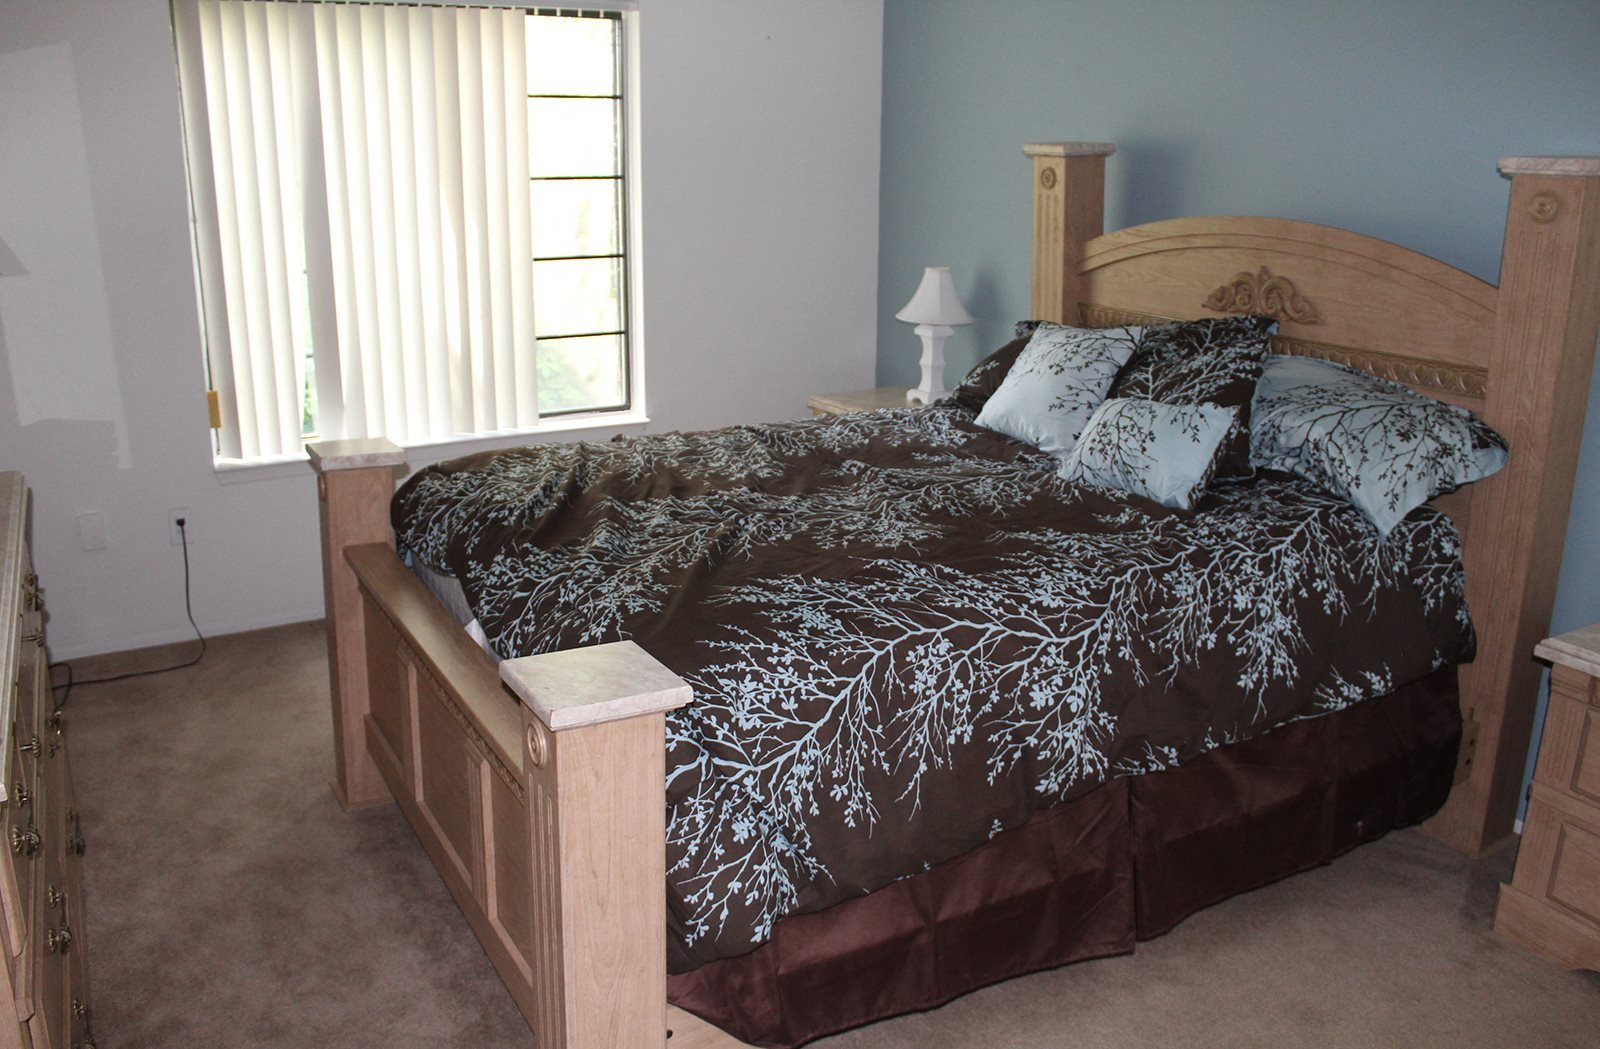 Homes For Rent In Clinton Twp Mi That Rent Monthly